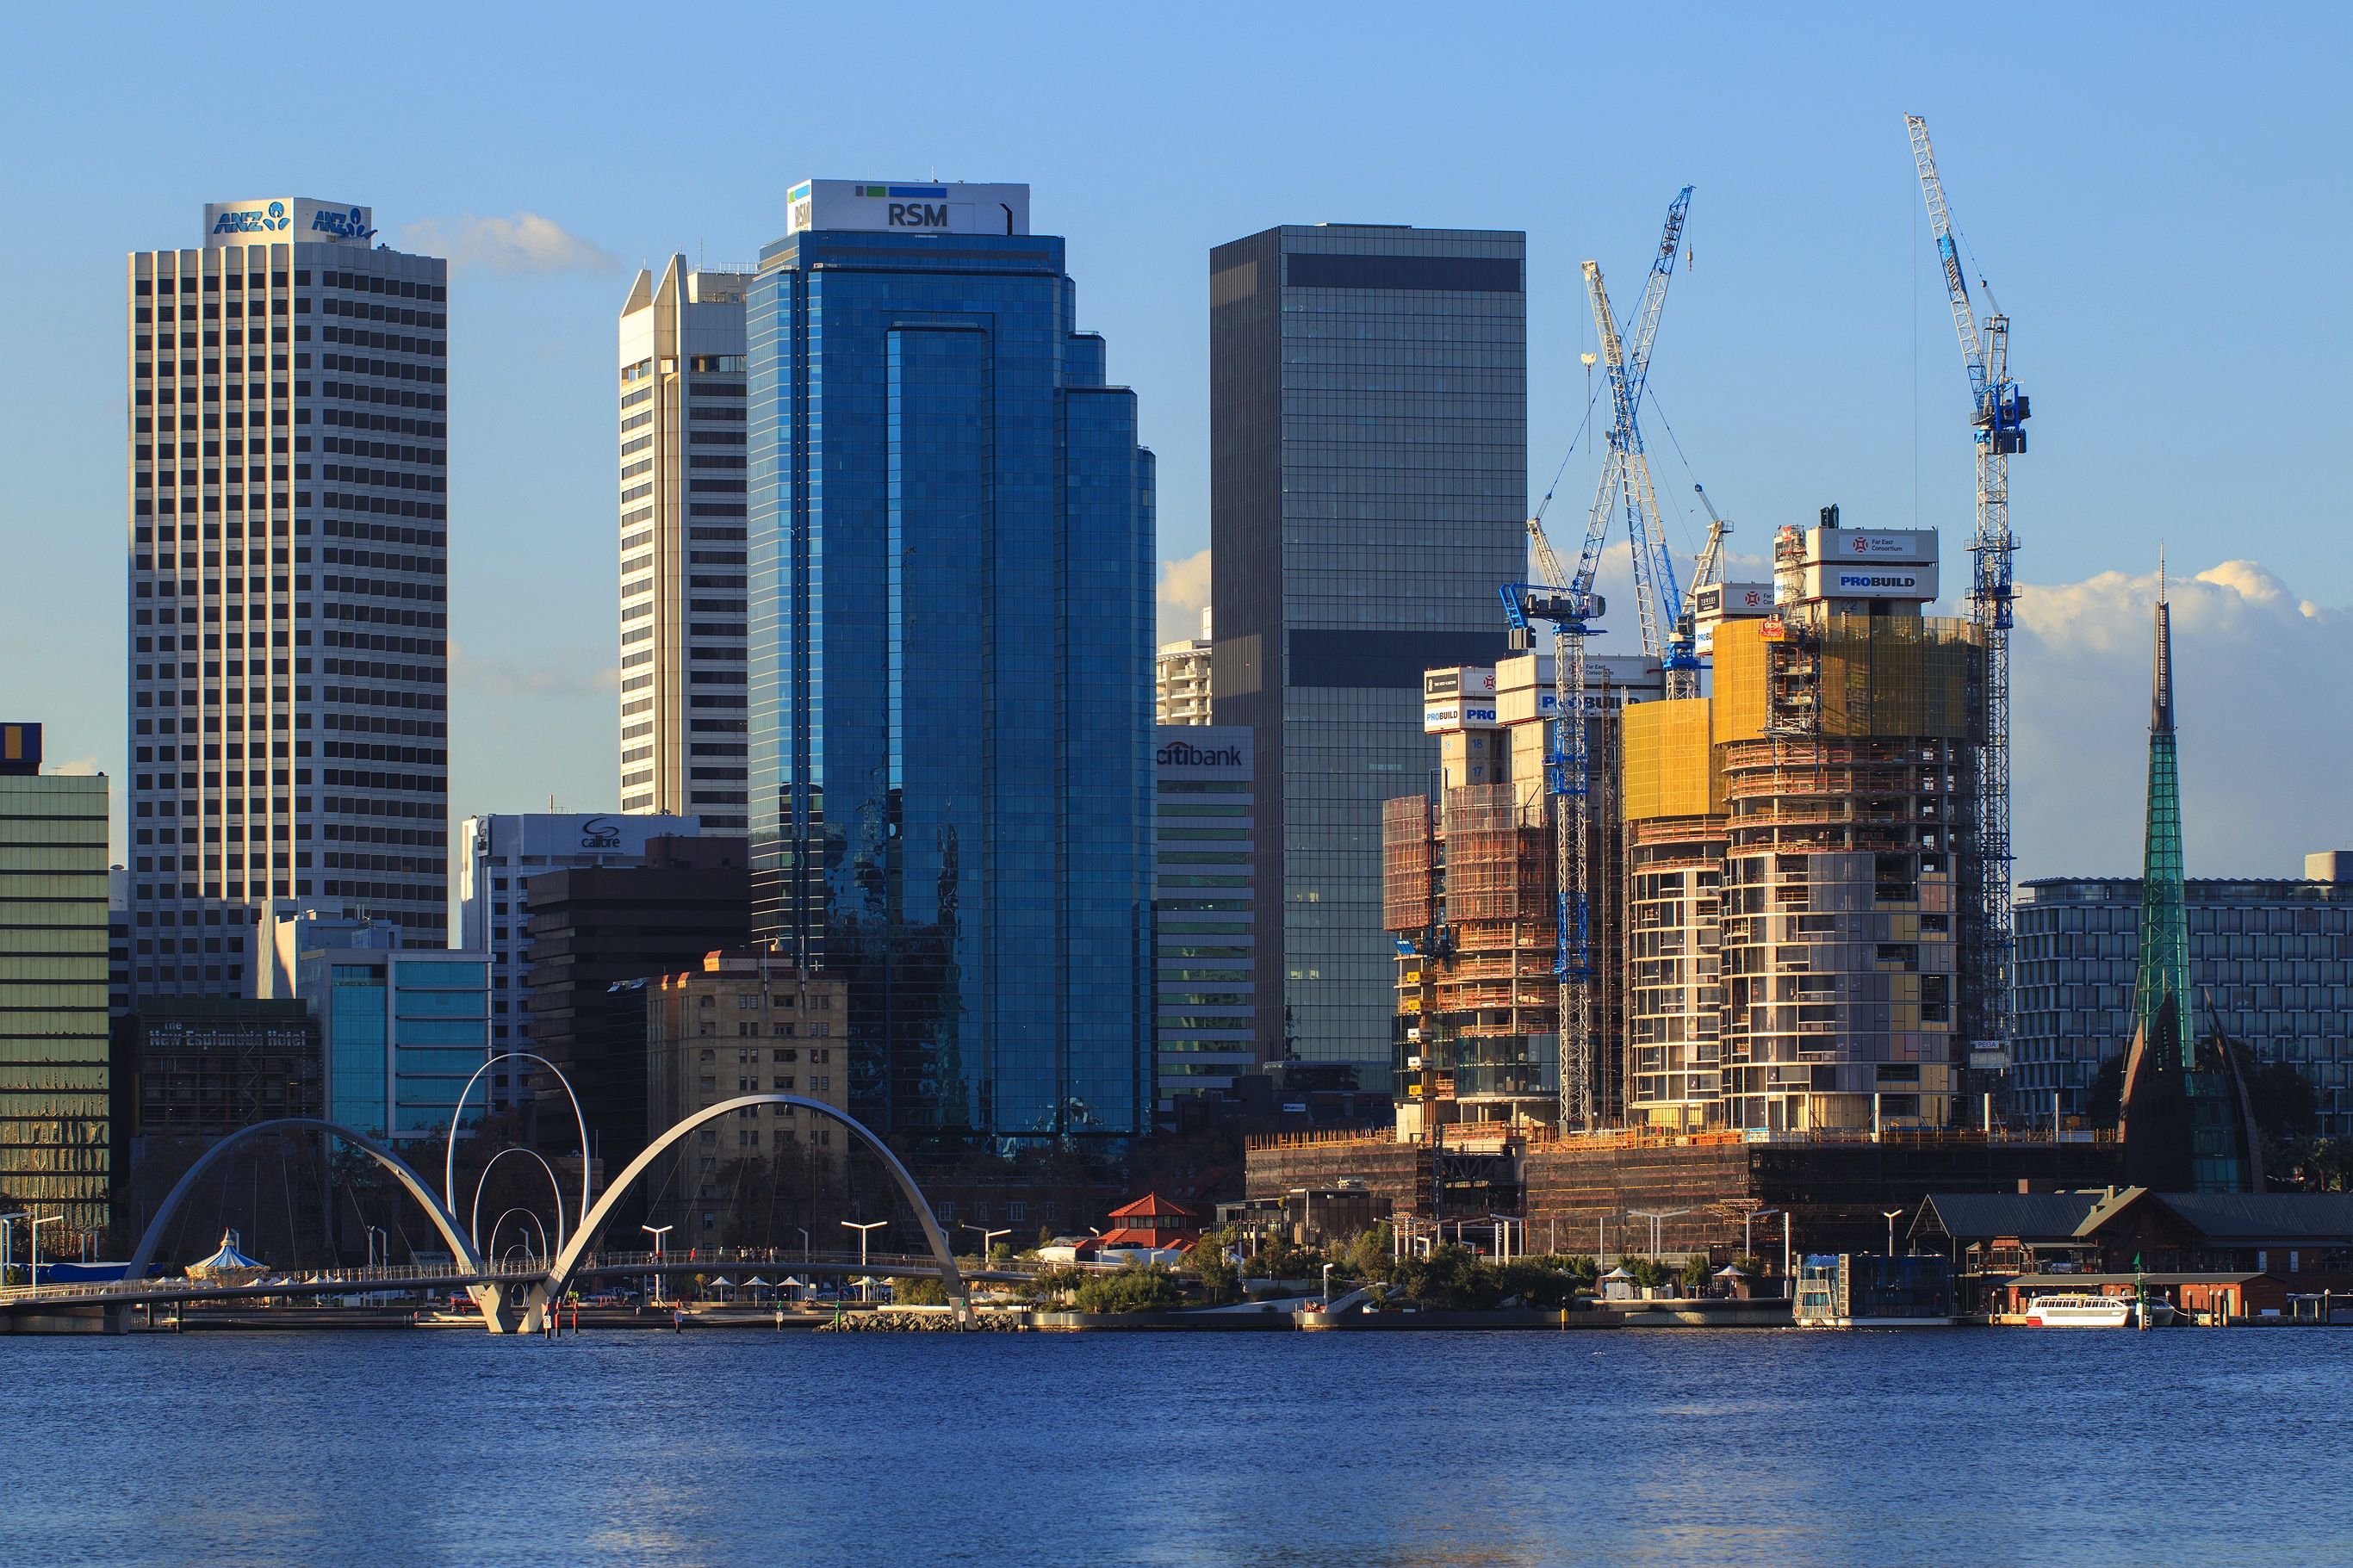 June 2018 Views of the Ritz Carlton construction across the Swan River